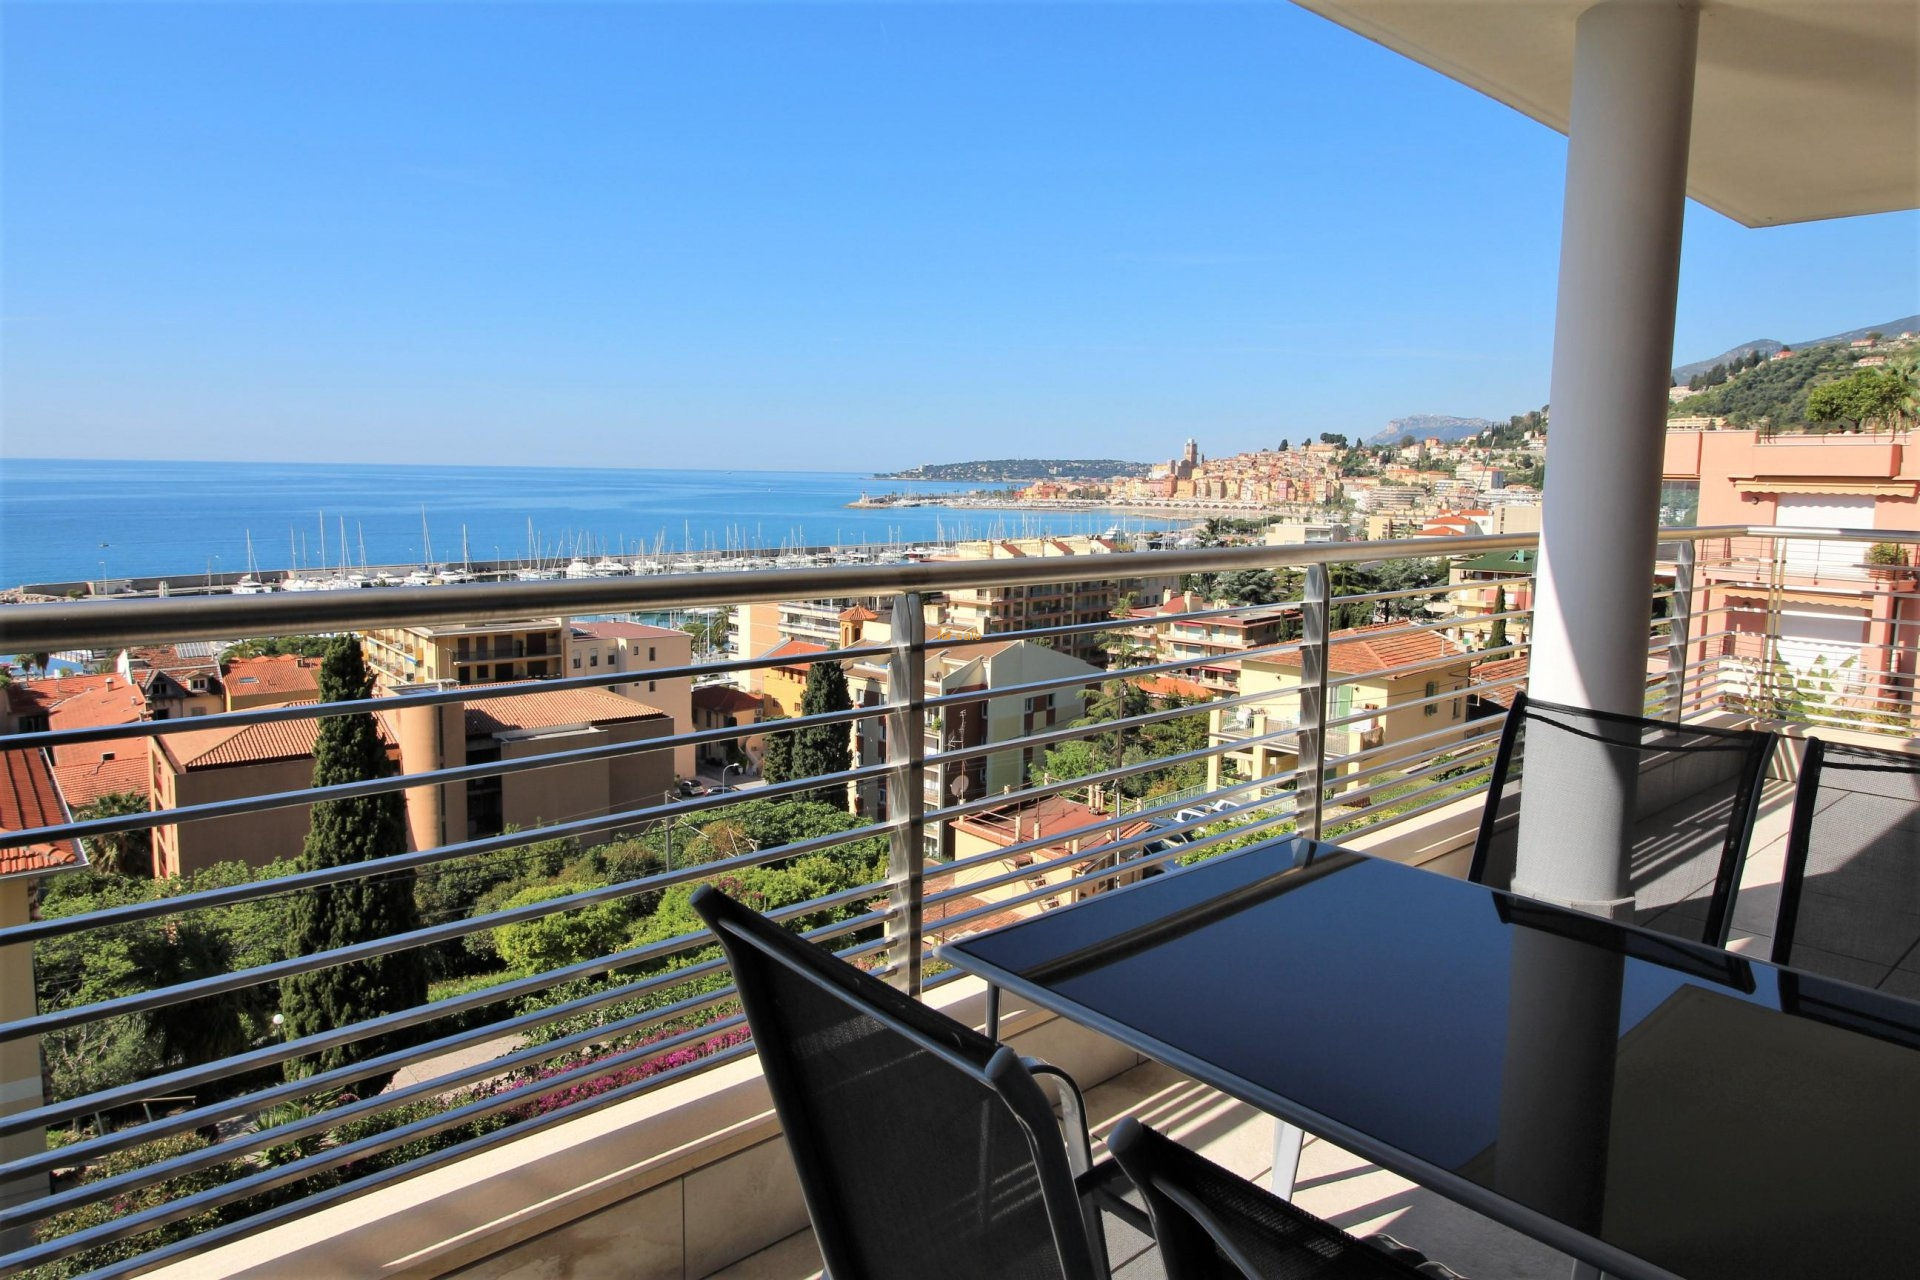 WMN2861845, Superb 2 bedroom apartment with terrace and magnificent sea view - Menton Garavan